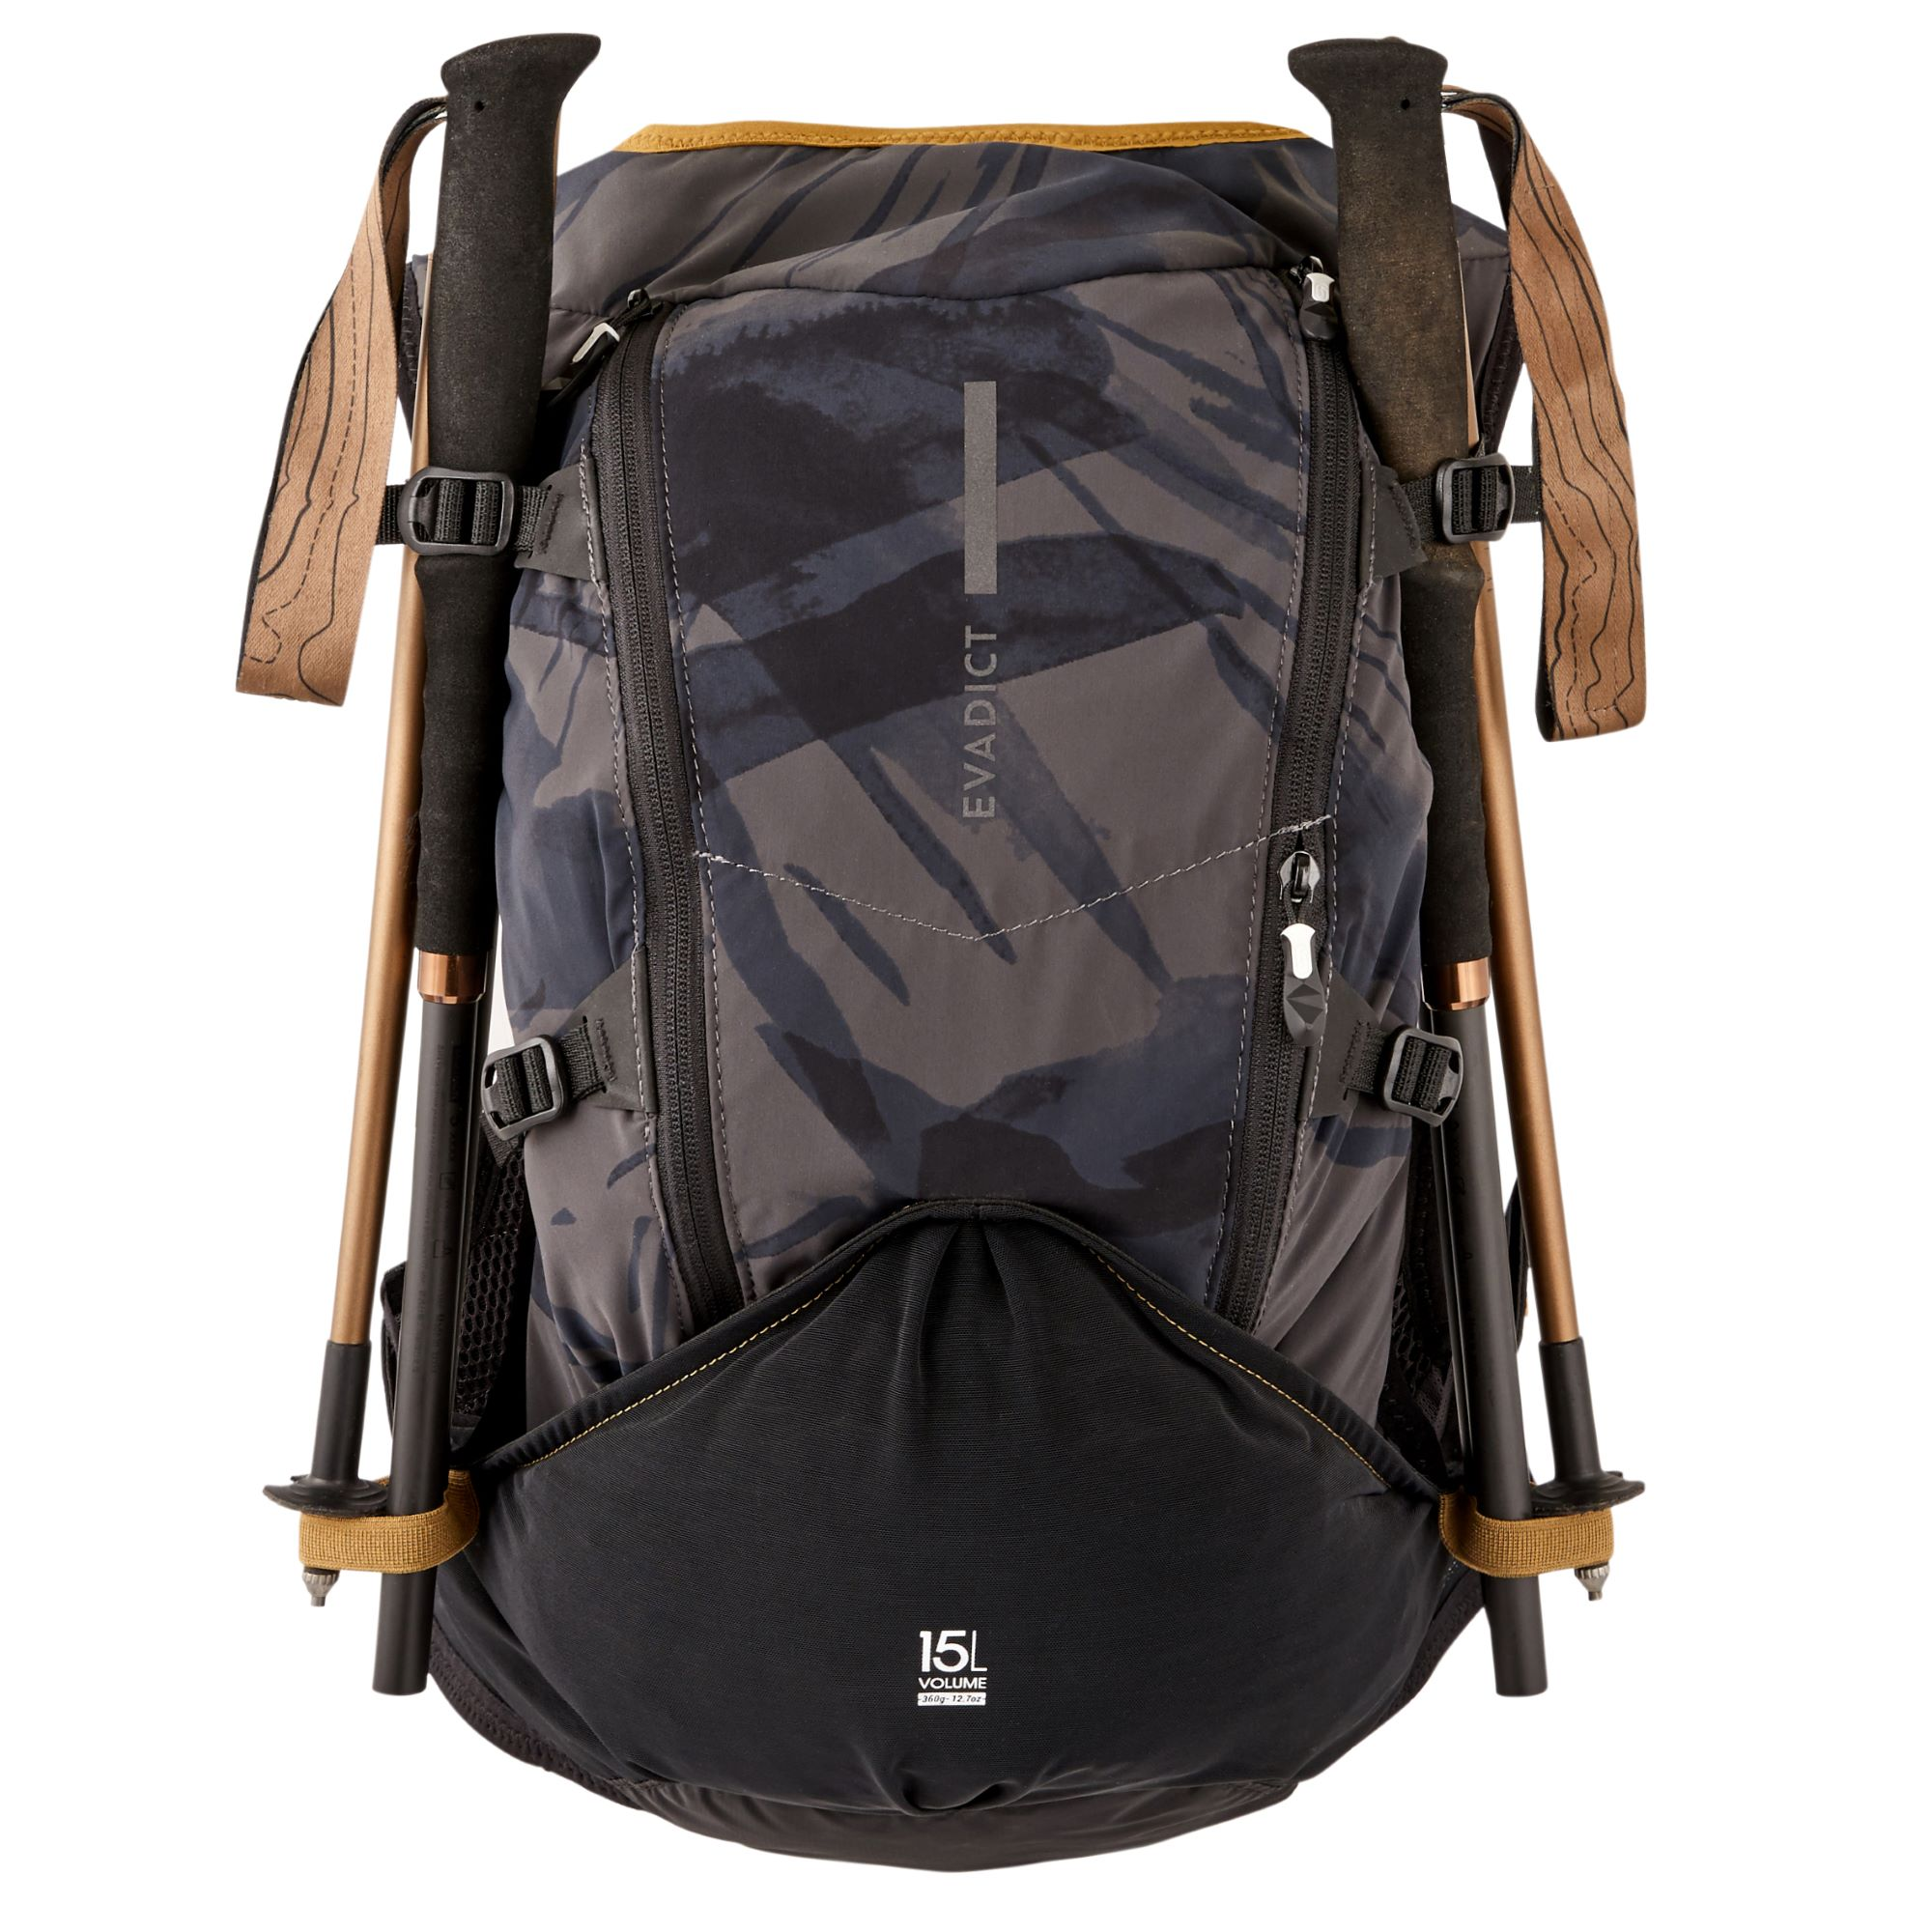 Kalenji Sac Trail Ultra 15 L Noir Ah20 Pe20 - 000 --- Expires On 26-12-2028.jpg